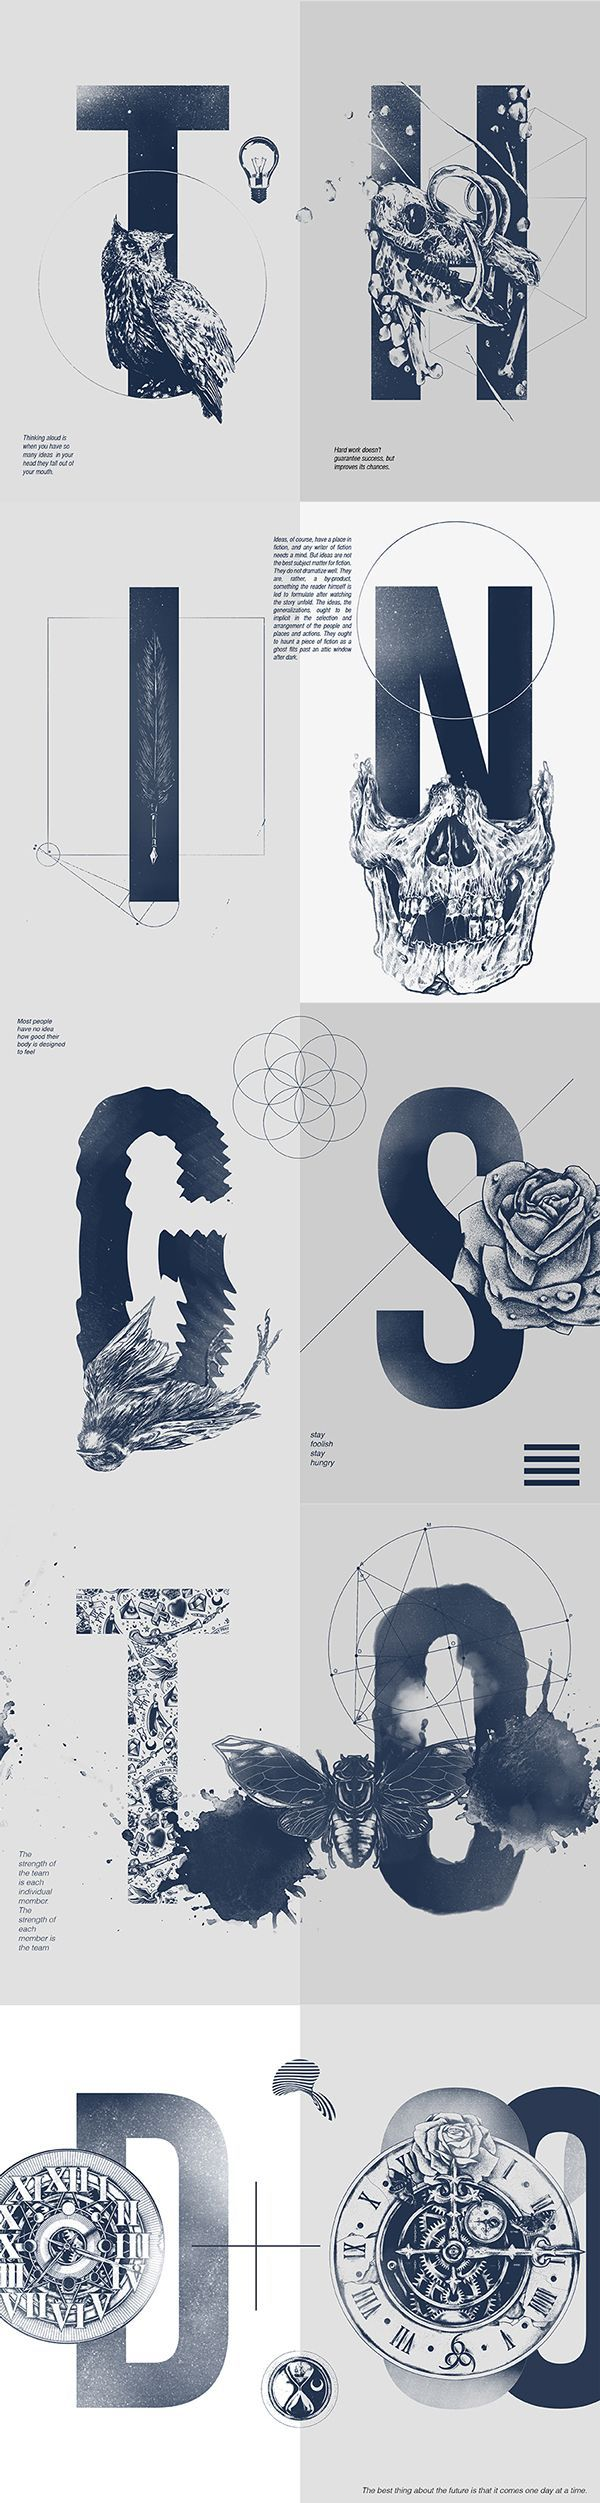 One color, big letters, illustrations in front of letter, geometric lines. Subdued. Things To Do by Cahya Sofyan